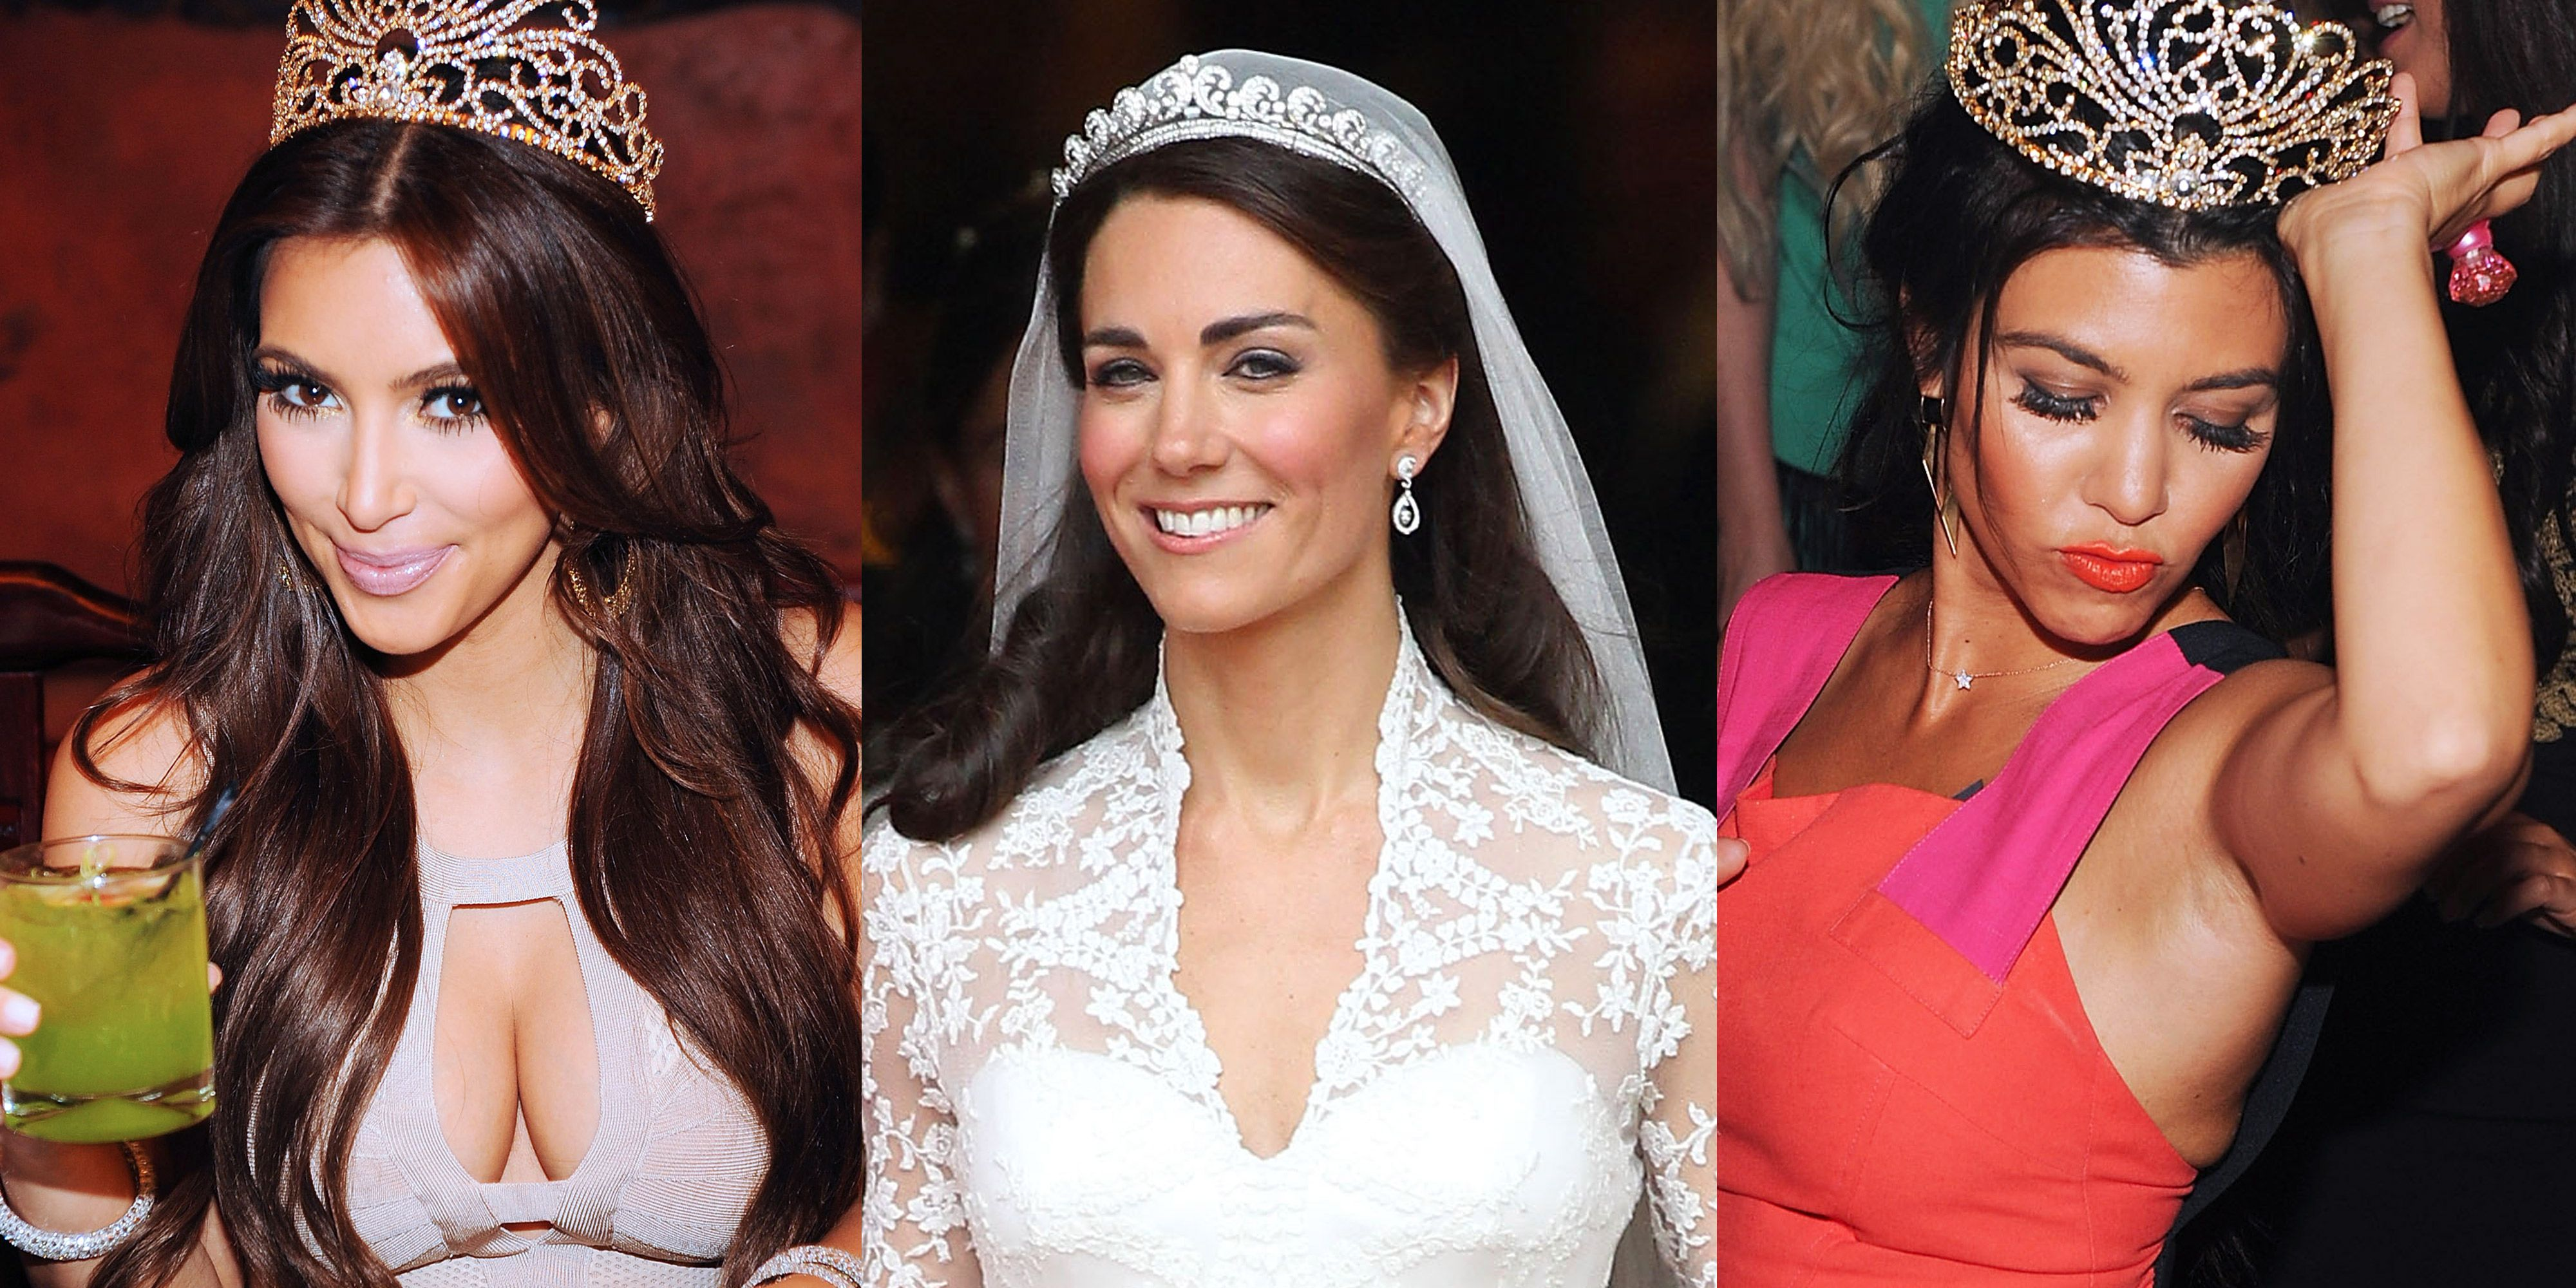 34 Surprising Similarities Between the Royal Family and the Kardashians